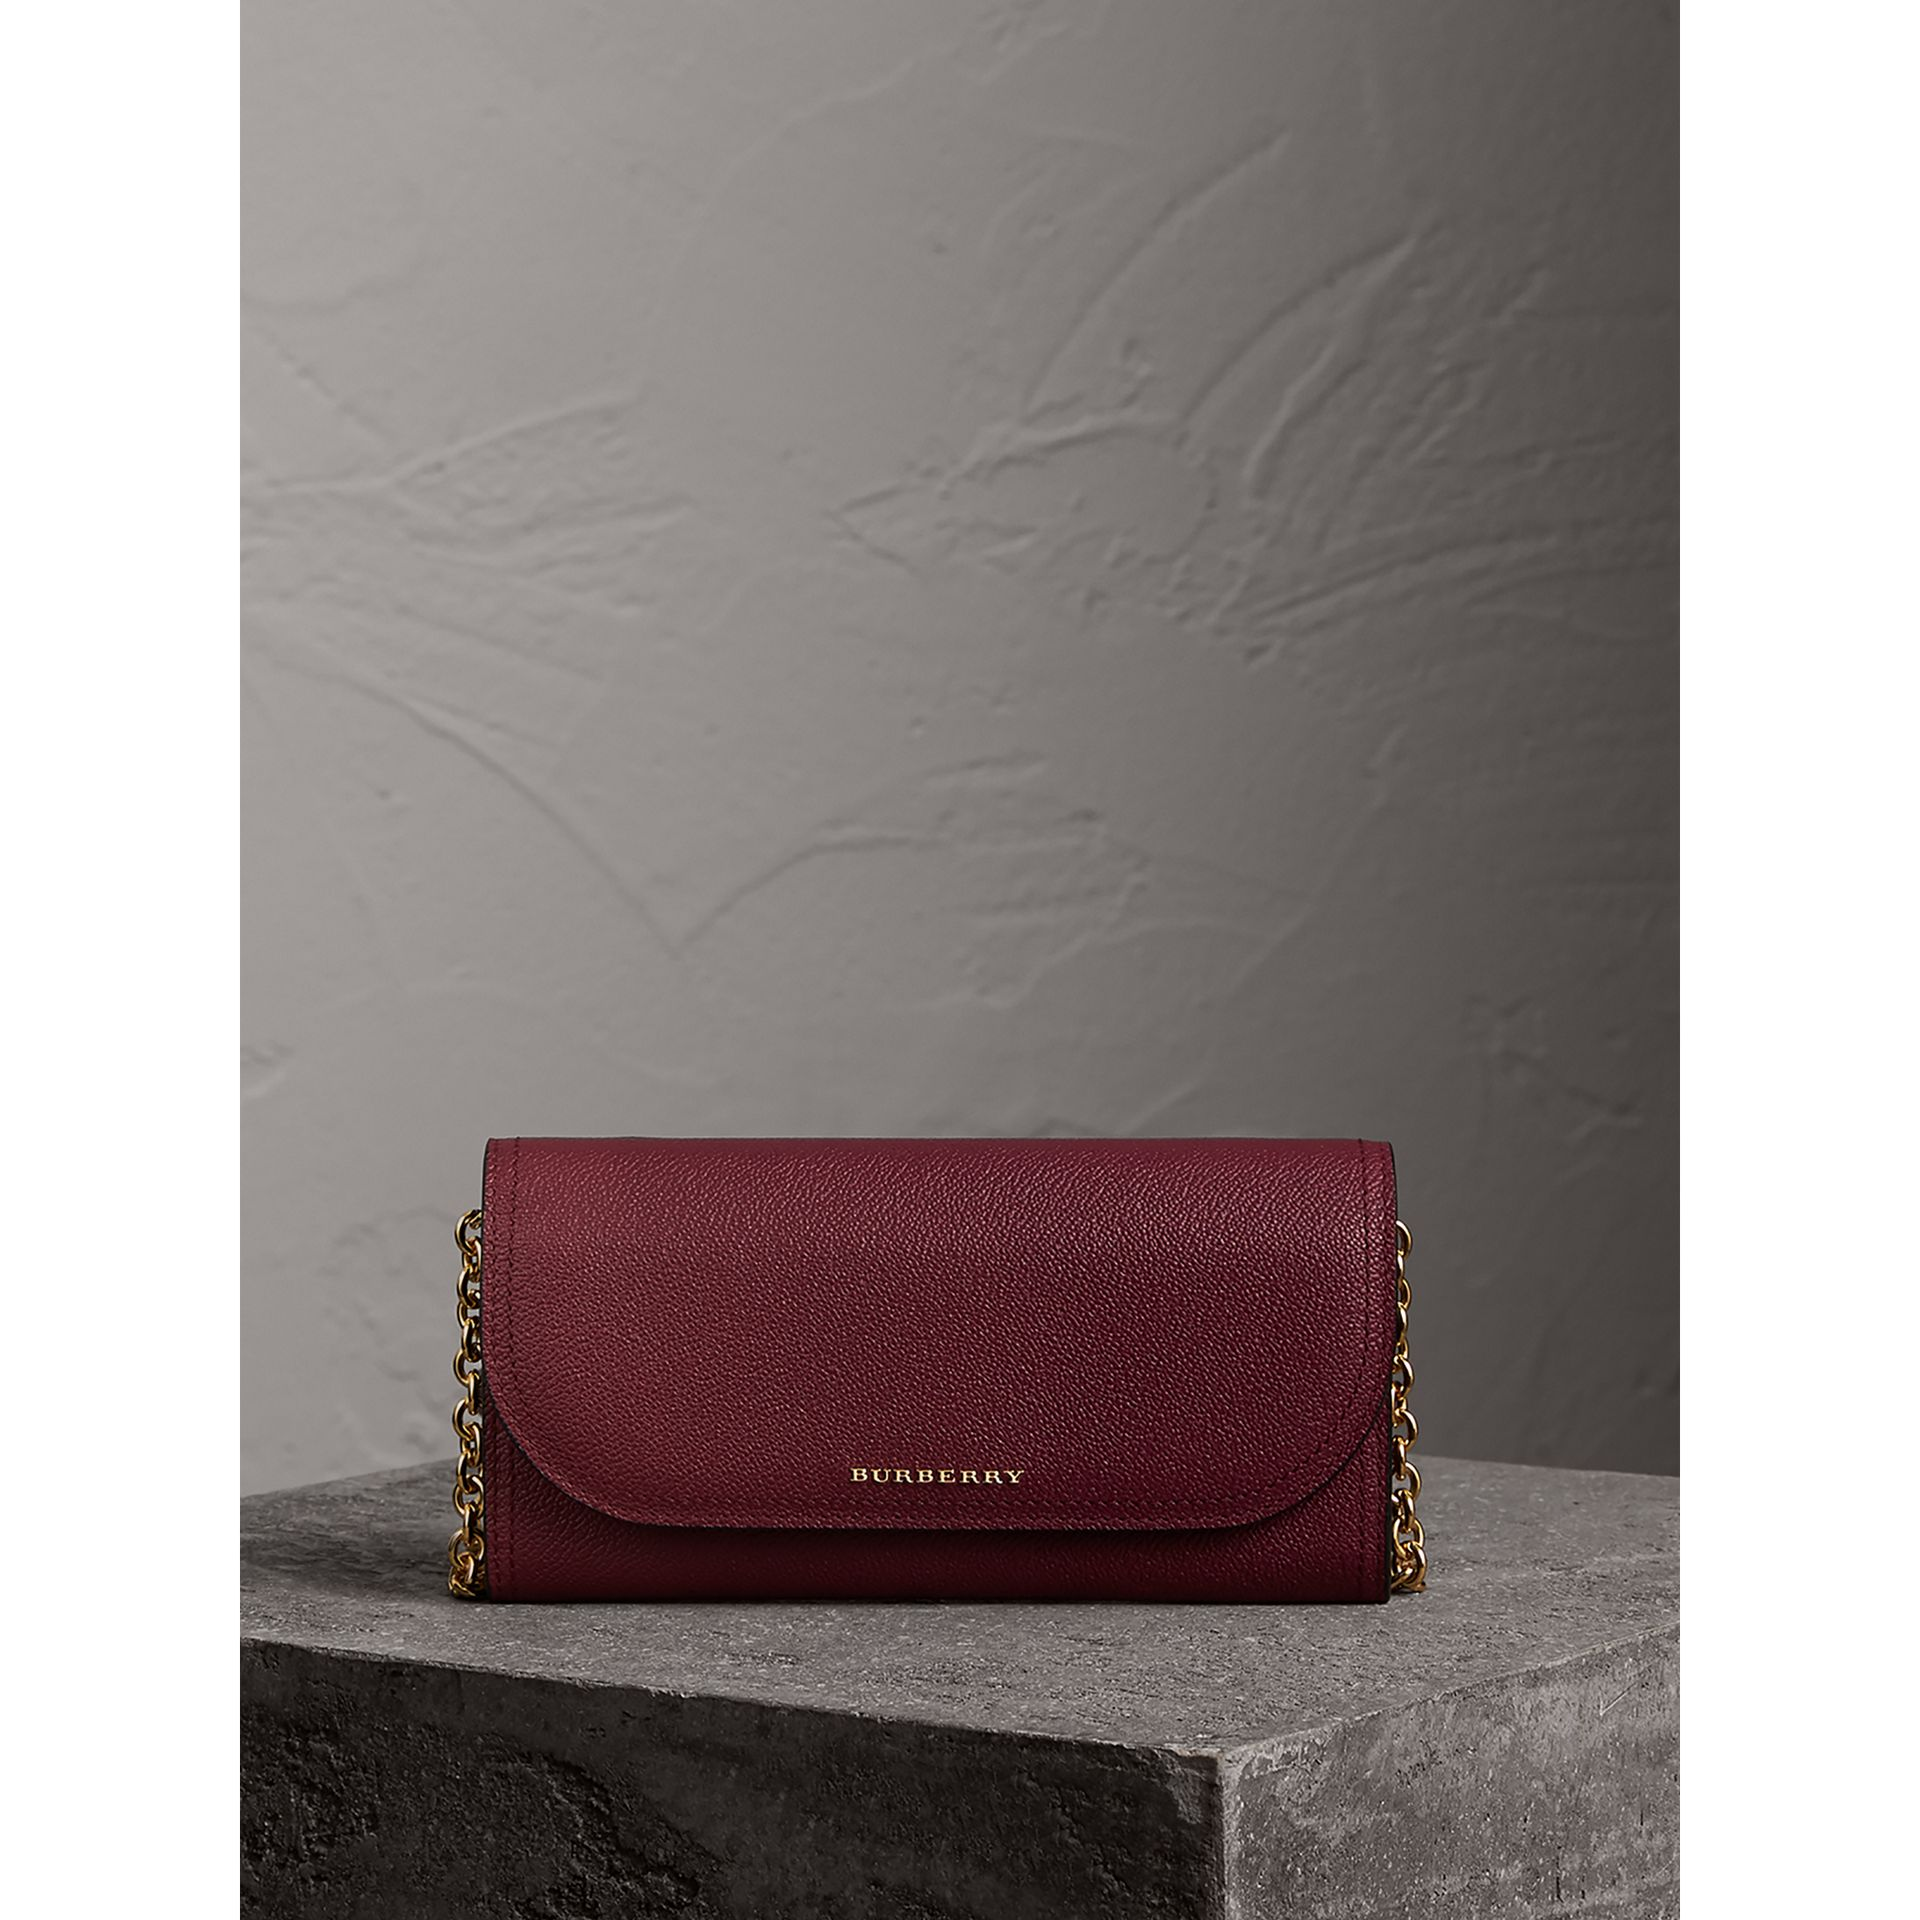 Leather Wallet with Chain in Dark Plum - Women | Burberry Canada - gallery image 5